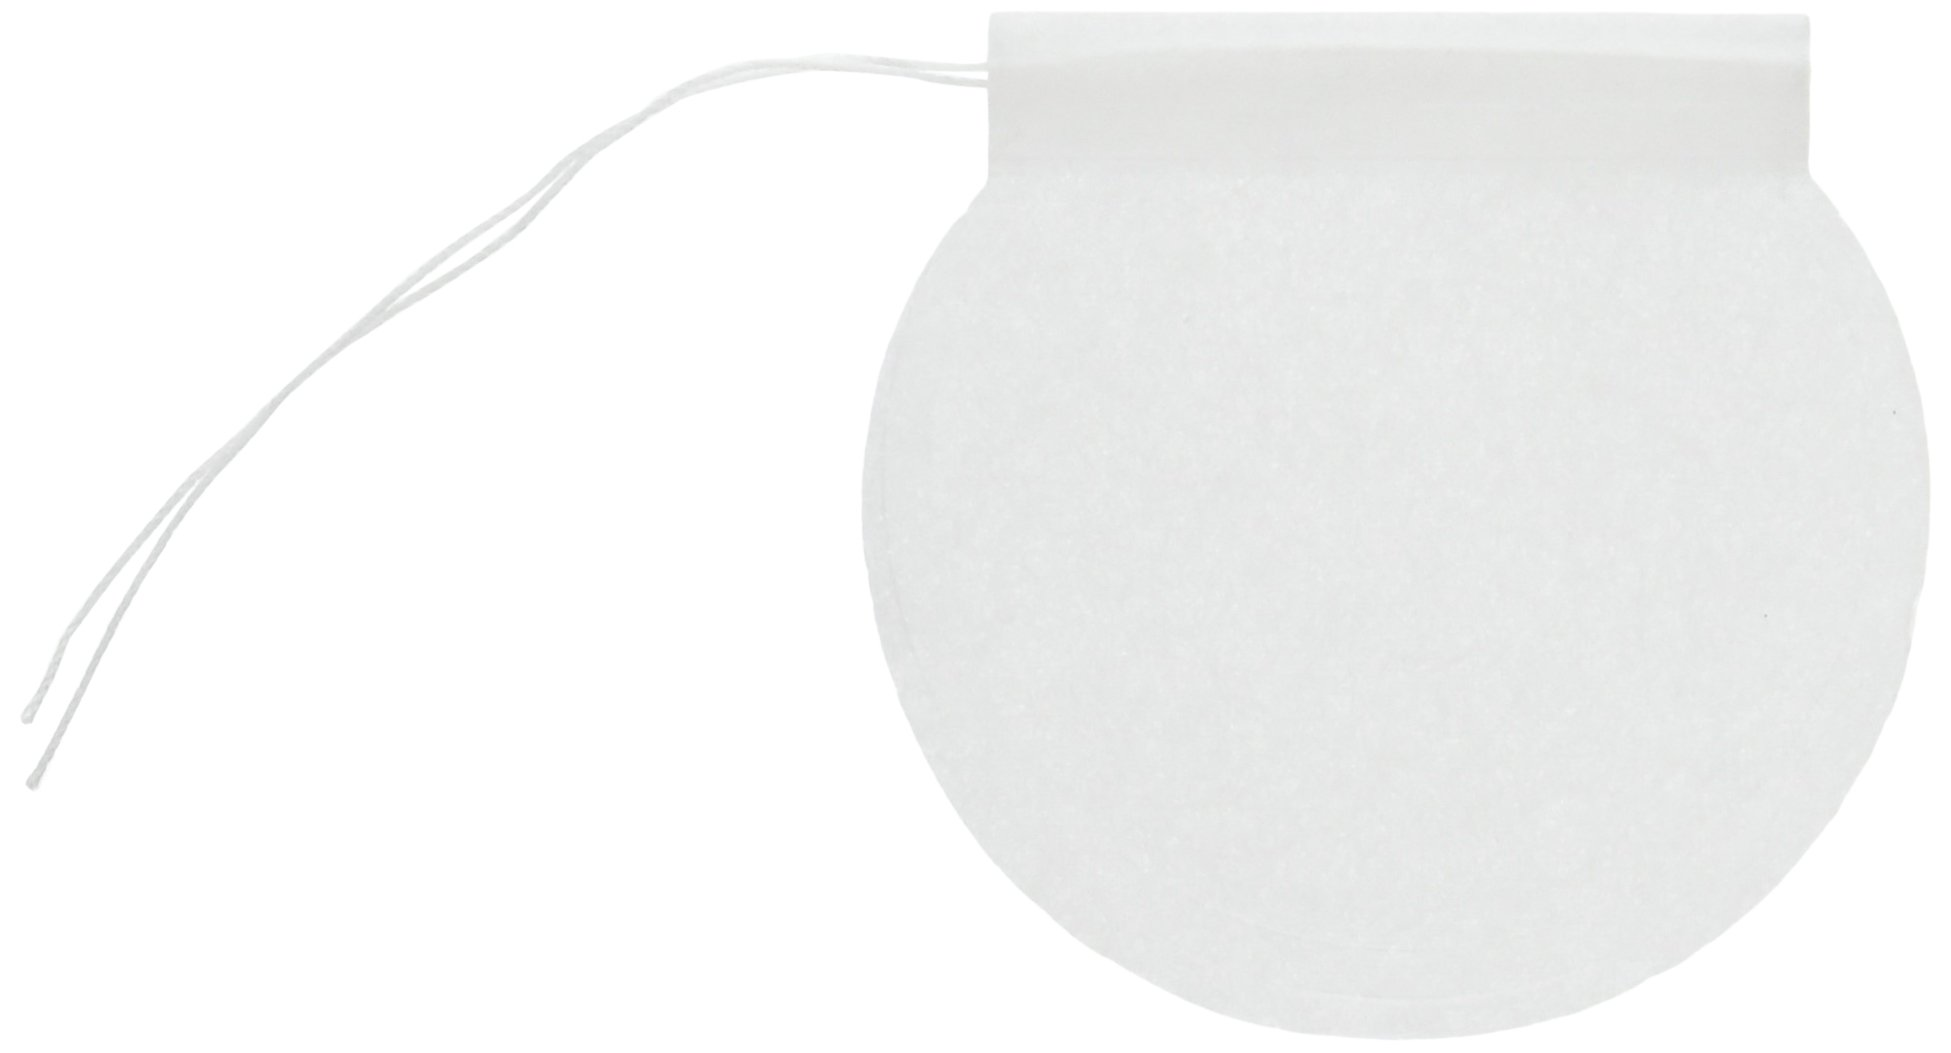 Special Tea 150 Count Round Empty Tea Bags with Draw String Closure, 2.25'' x 2.5'', White